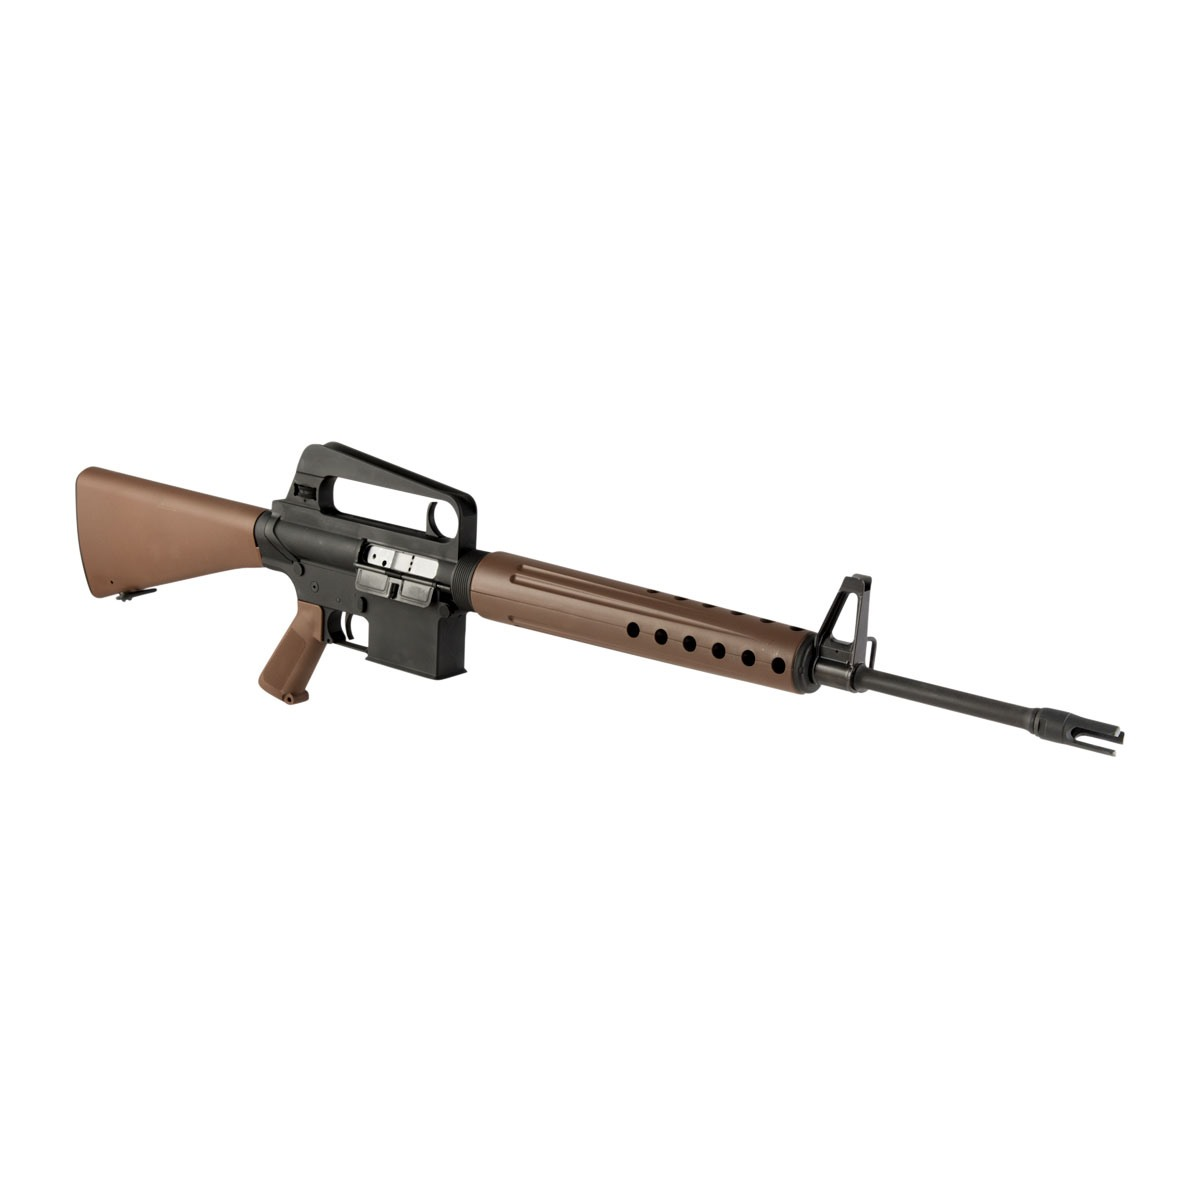 hight resolution of brownells brn 10 retro rifle 308 7 62 20in barrel